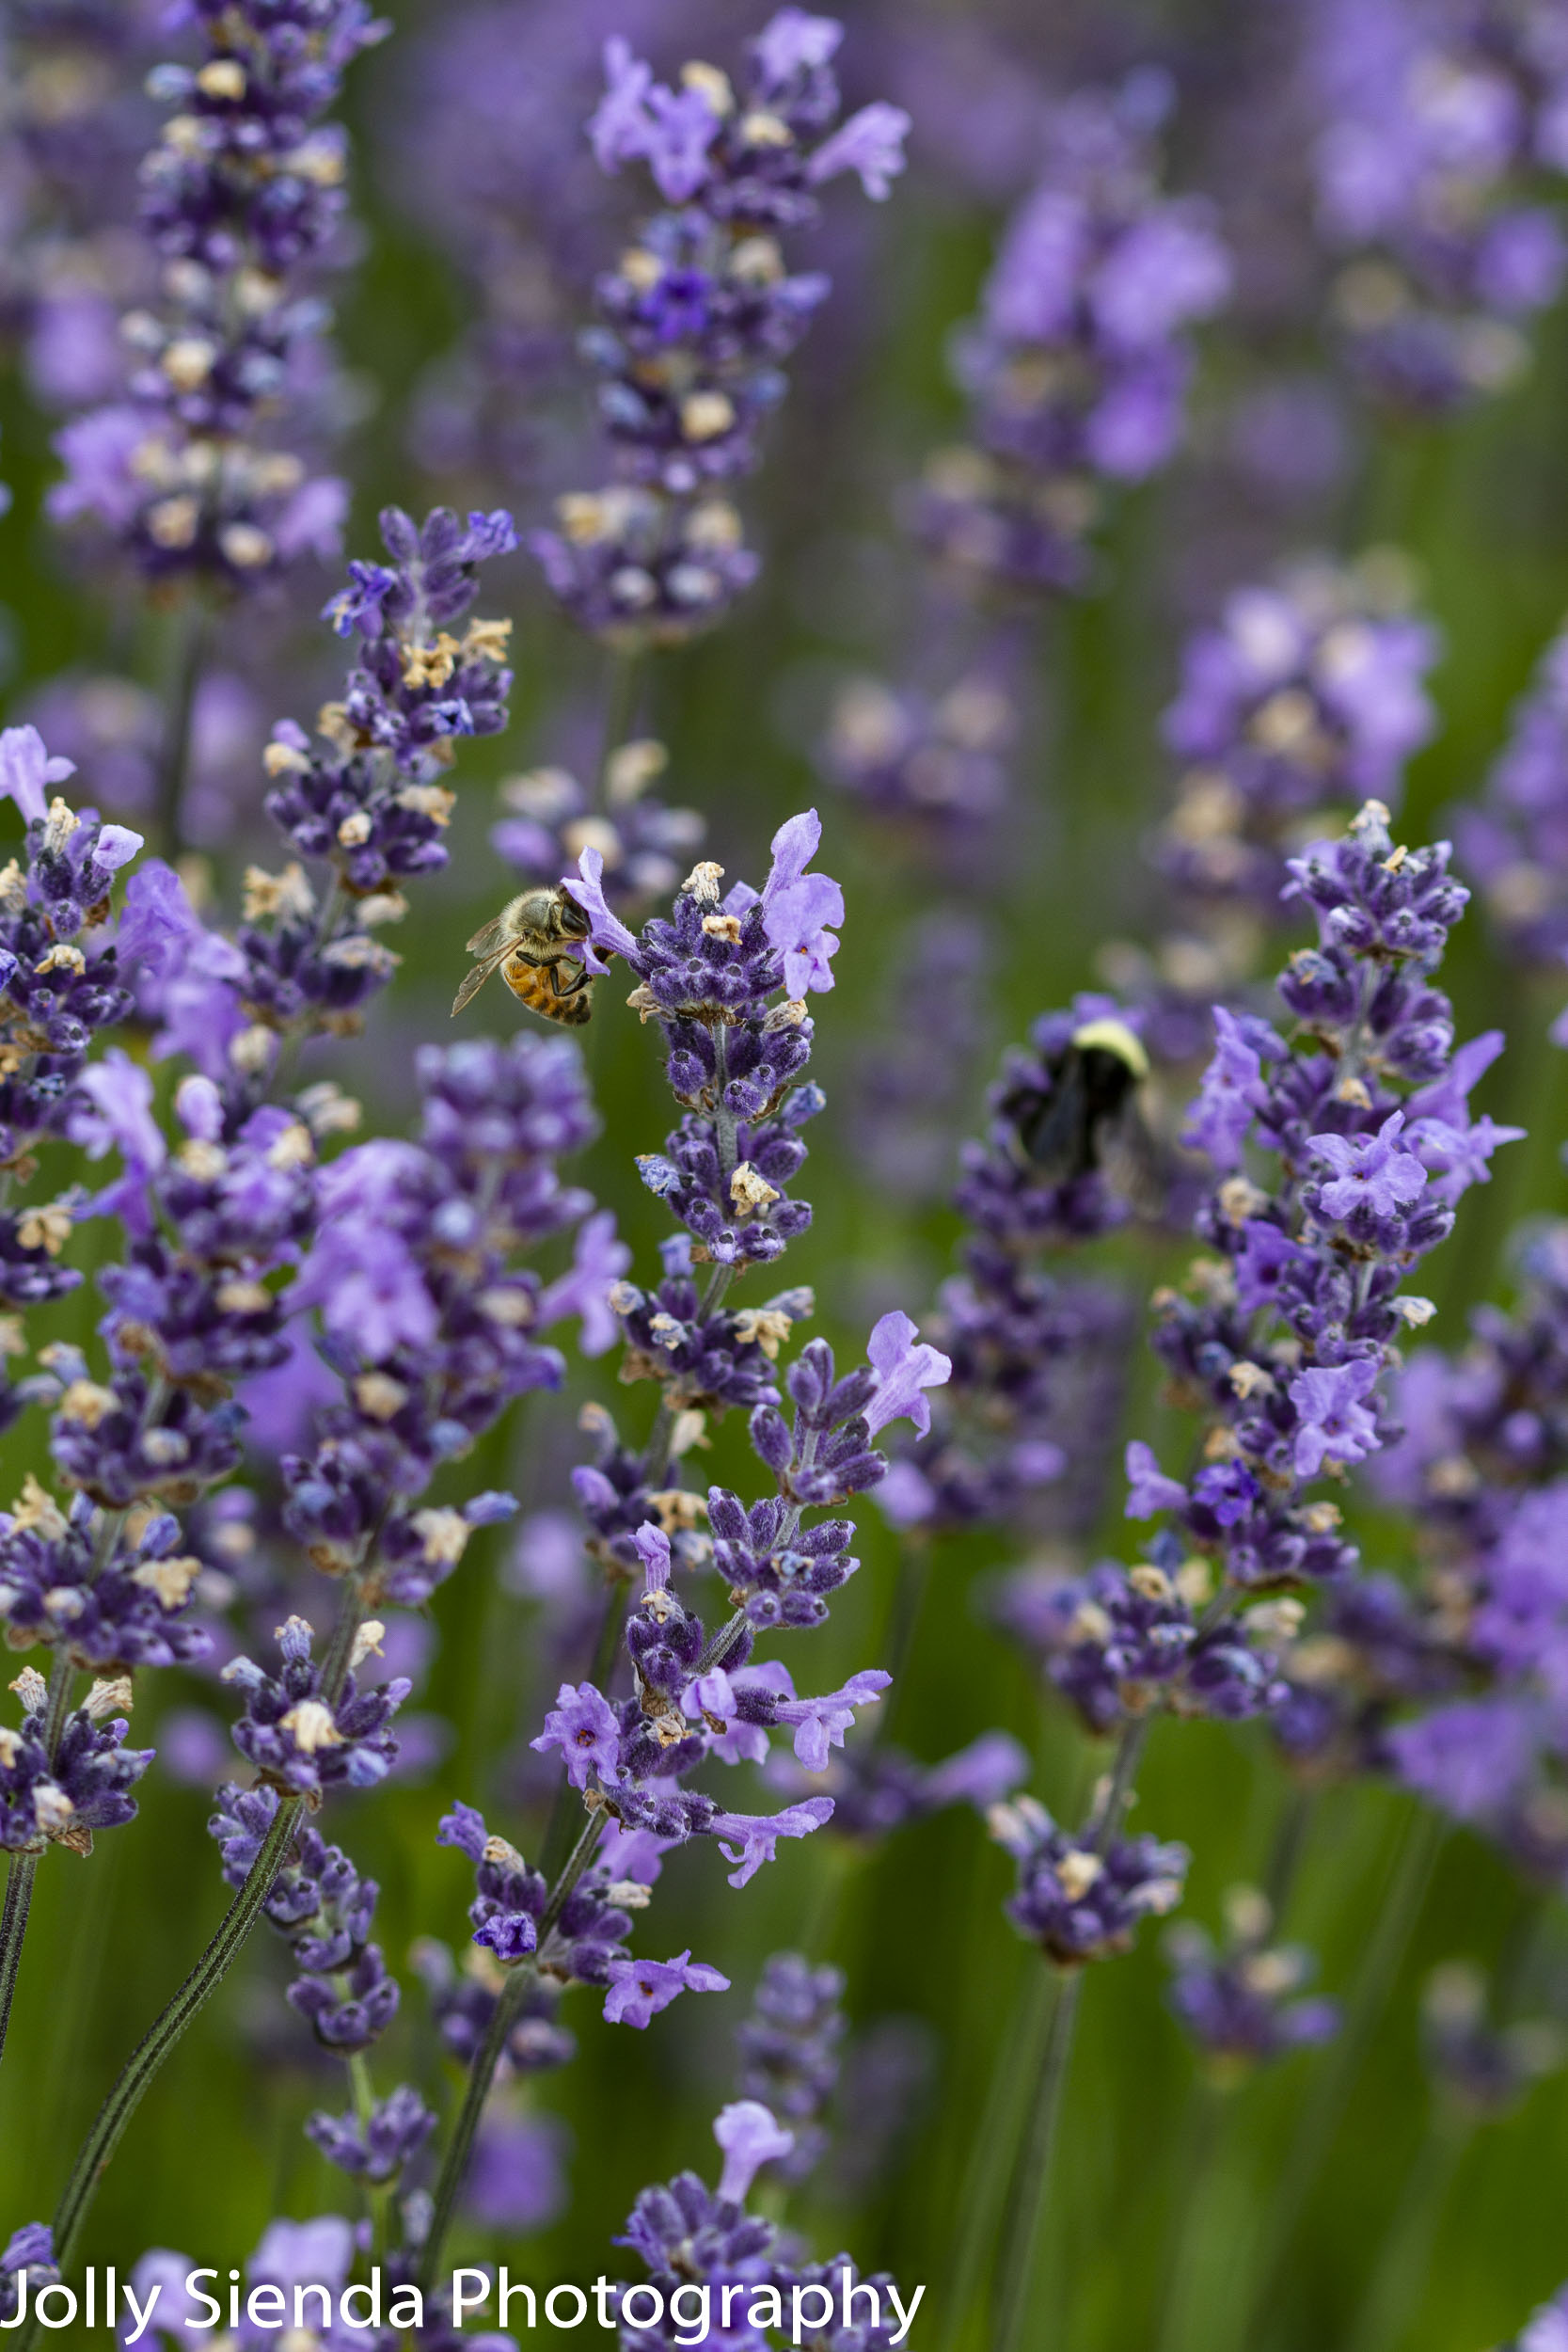 Bees polinating the lavender